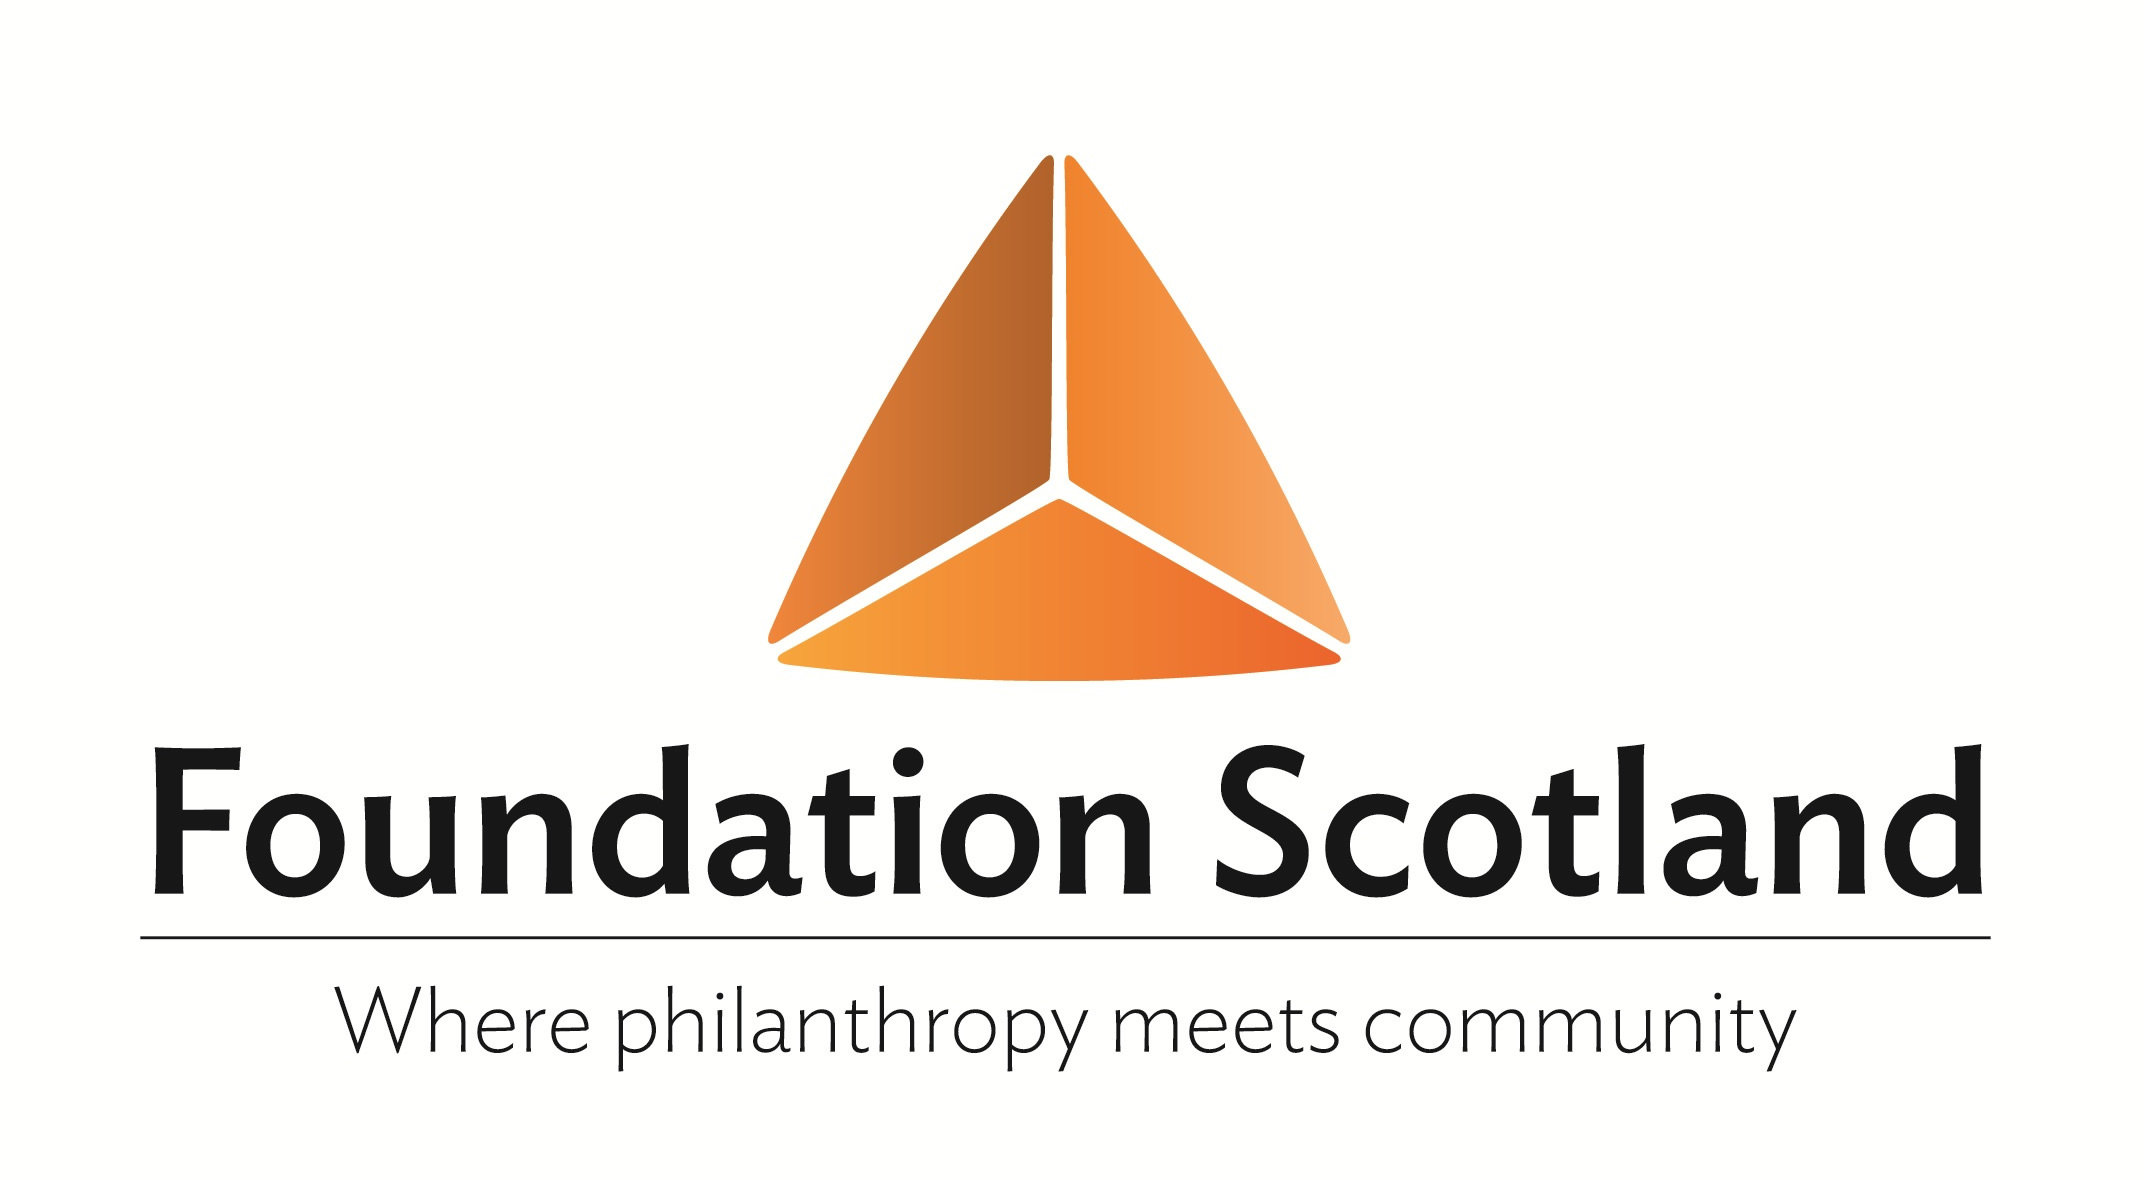 Link to Foundation Scotland website